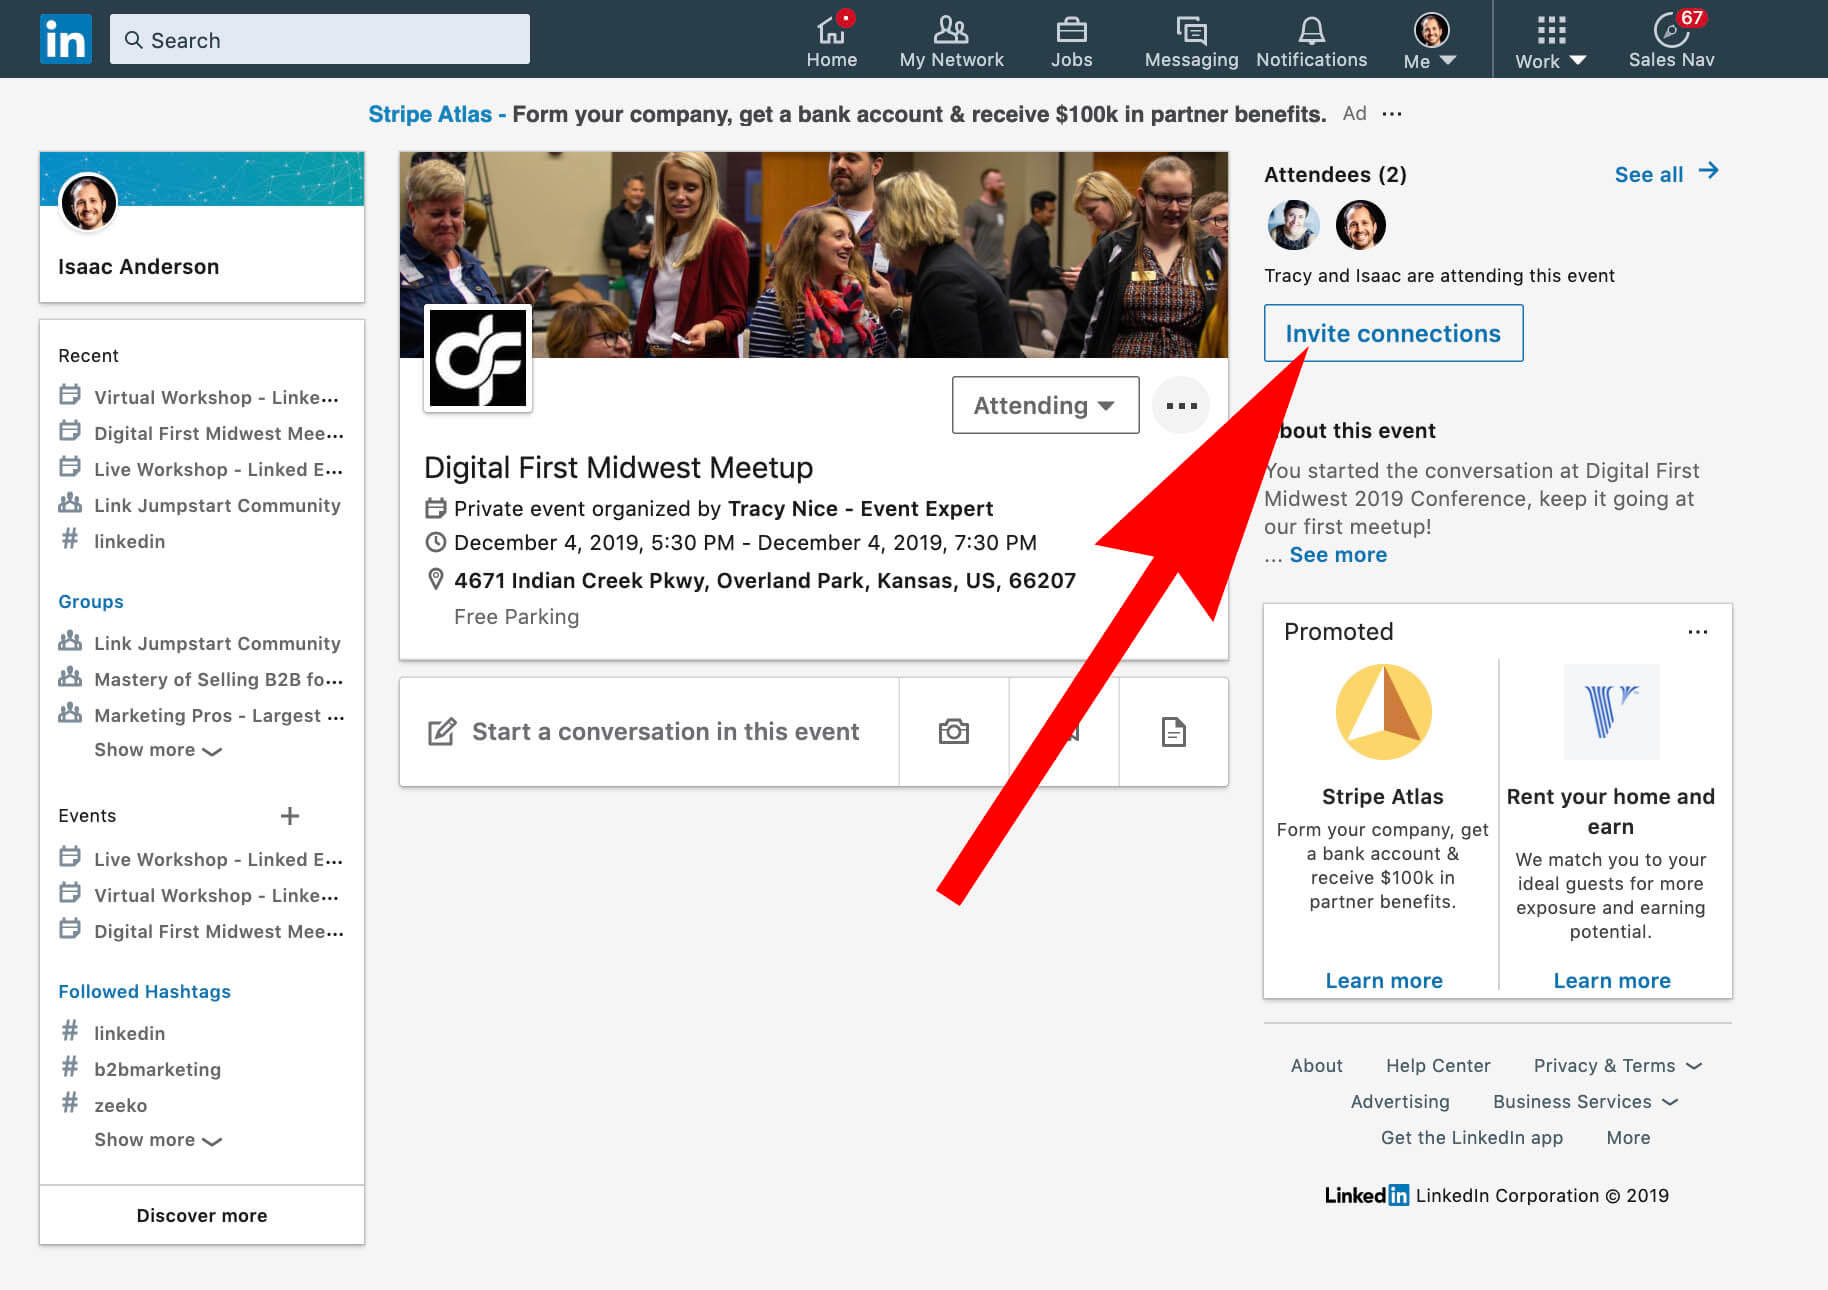 Invite connections to Linkedin event